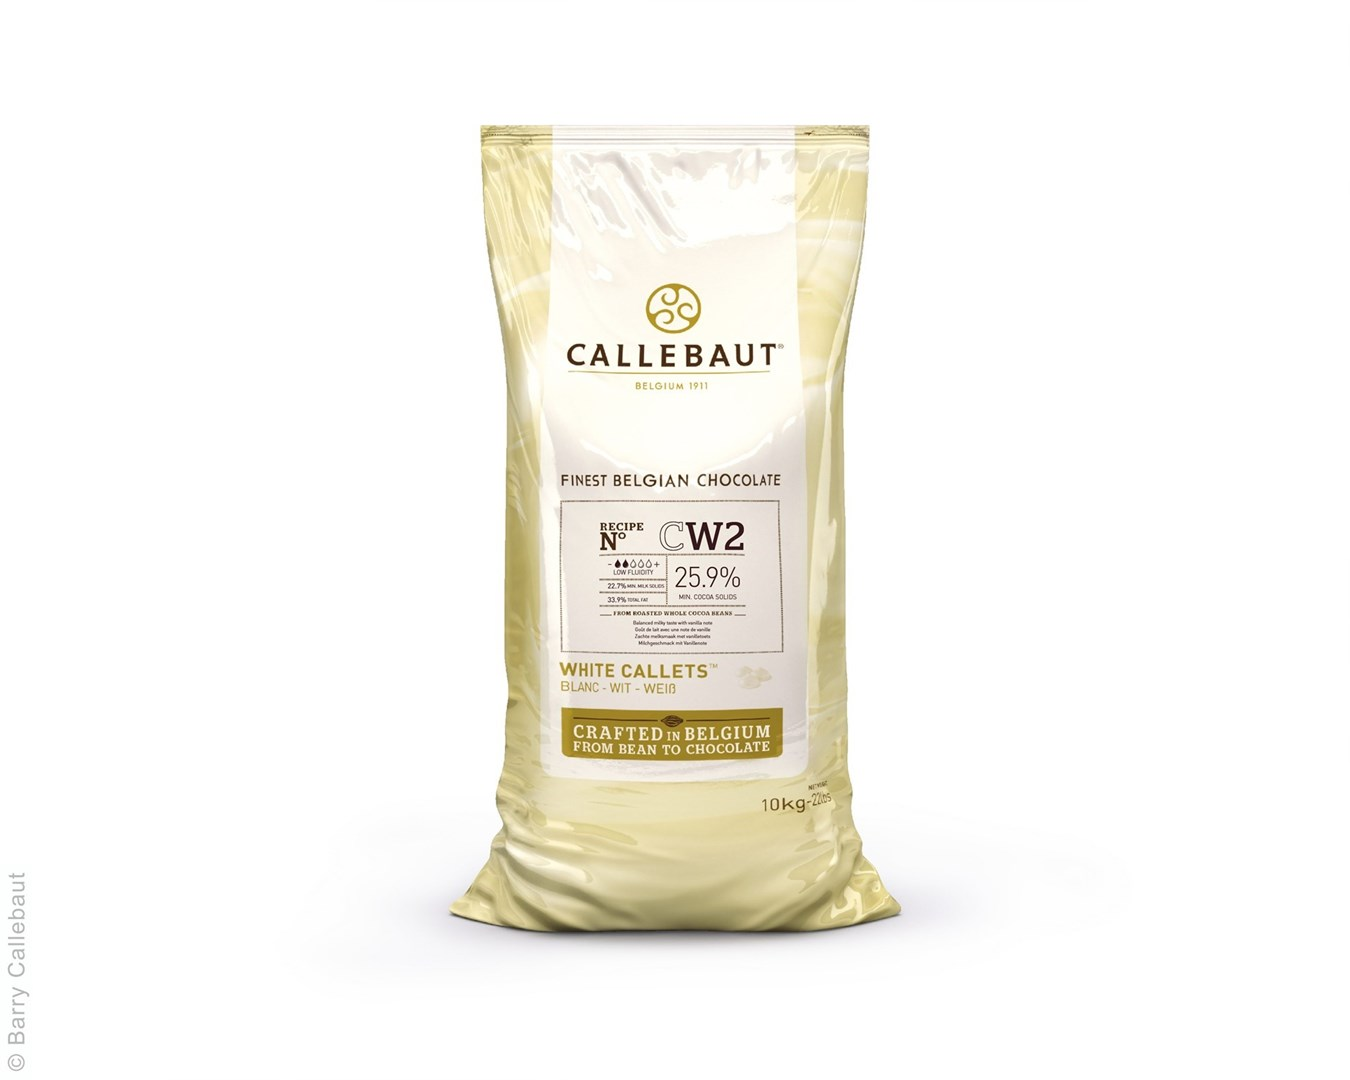 Productafbeelding Callebaut witte chocolade callets - CW2NV - 10 kg (25,9%)